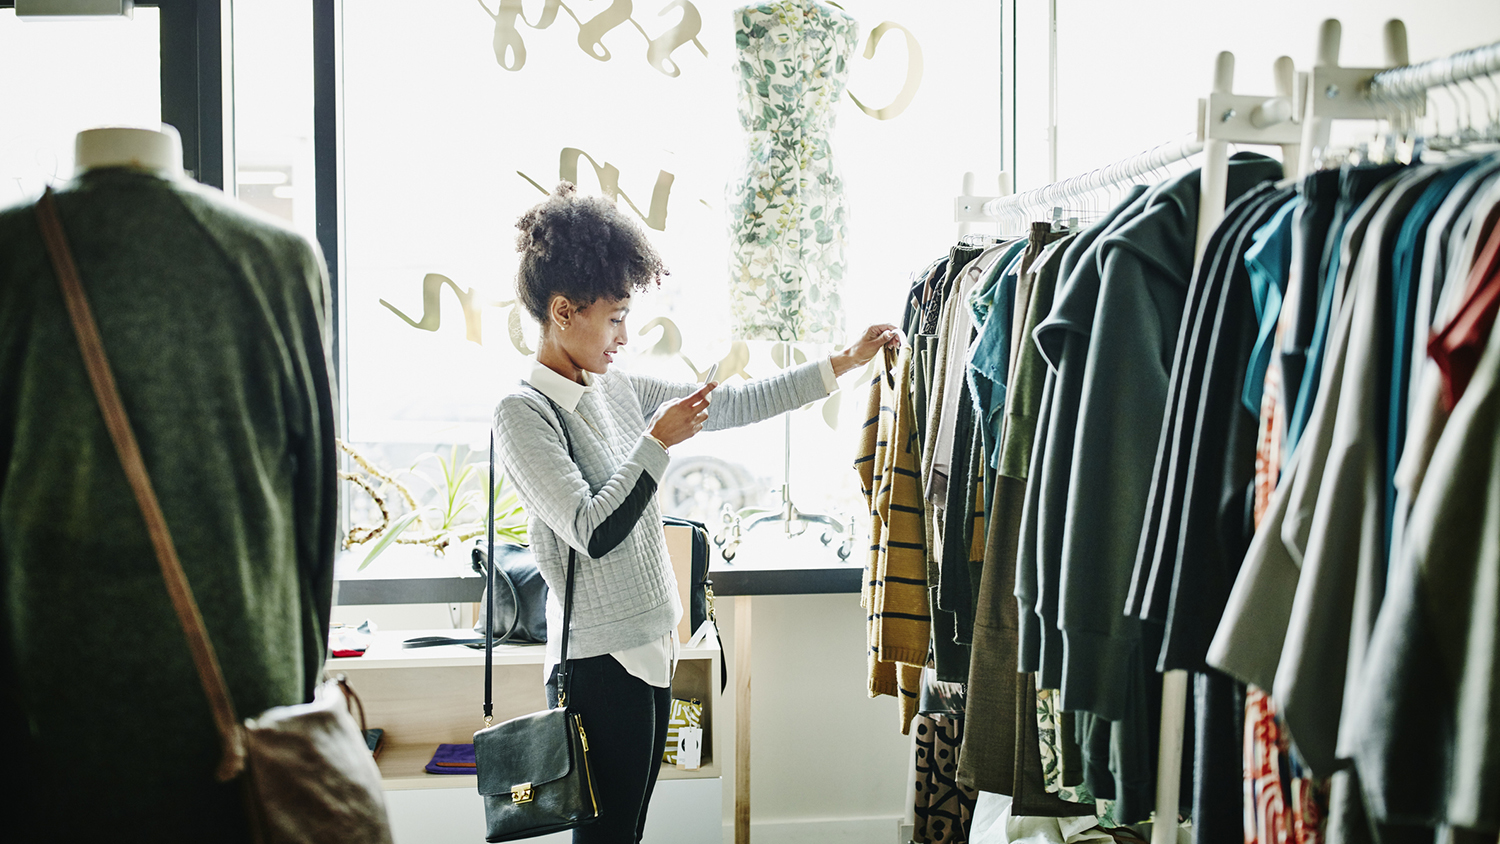 15 Best Clothing Stores for Women Over 50 of Every Style